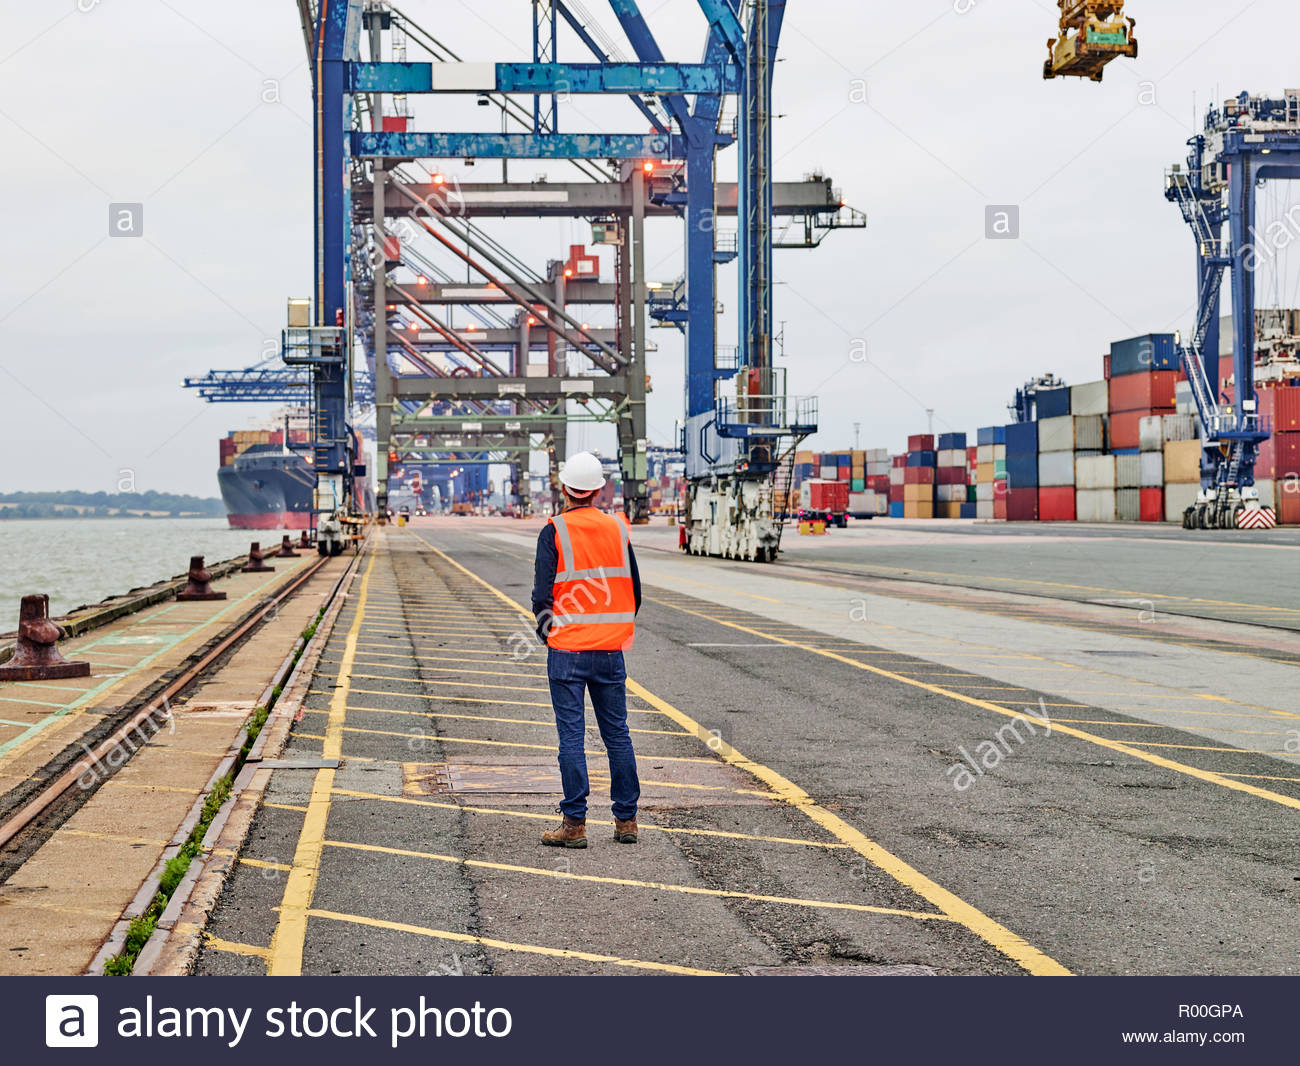 Rear view of dock worker looking at cranes on Port of Felixstowe, England Stock Photo